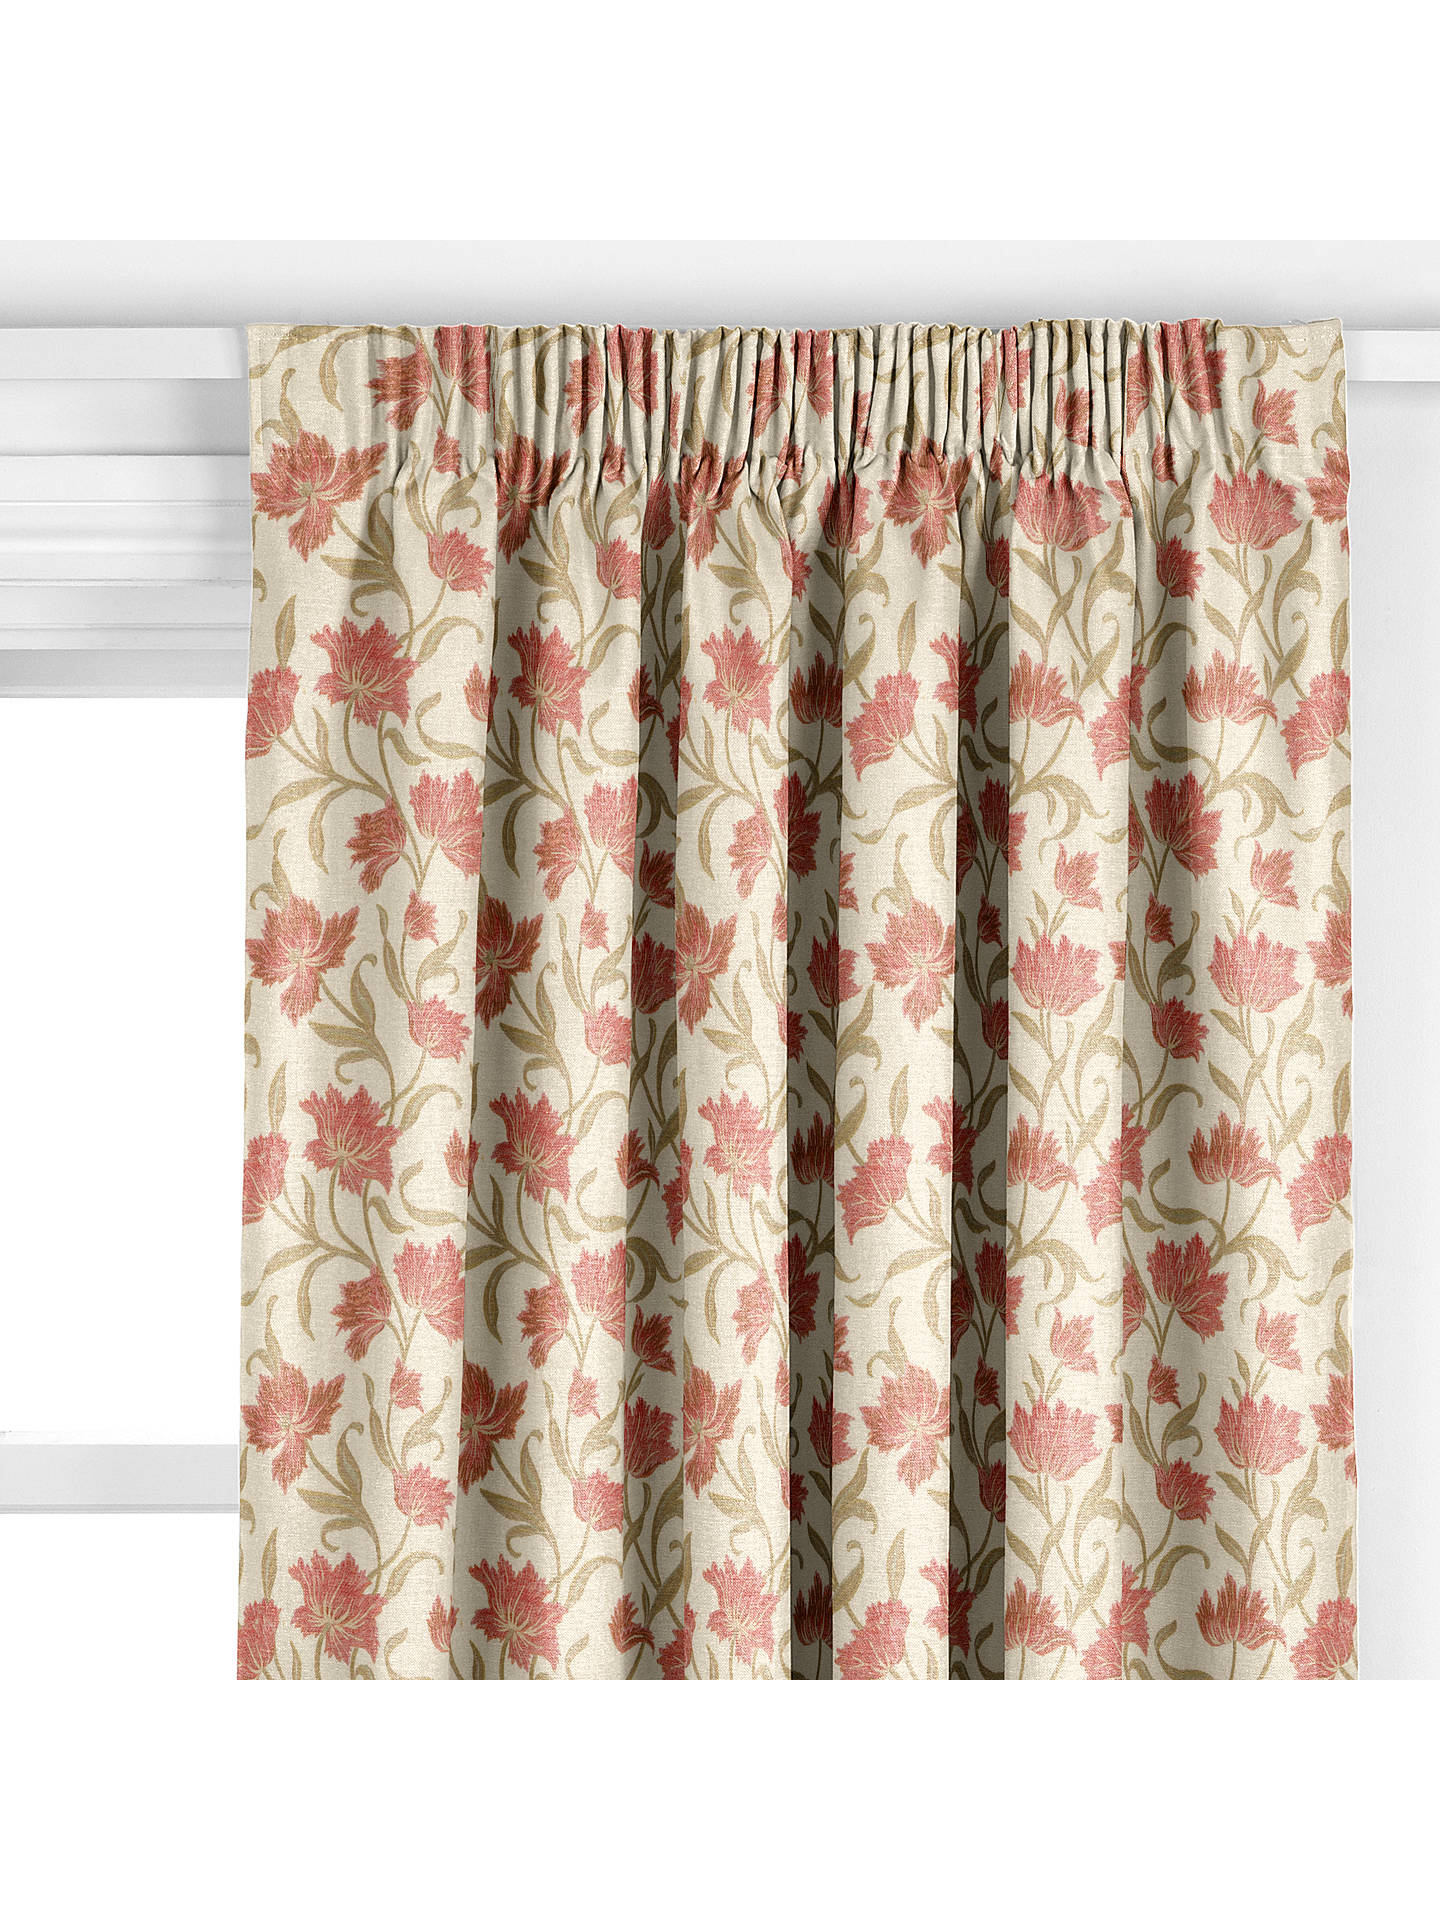 BuyJohn Lewis Partners Colette Made To Measure Curtains Bright Red Online At Johnlewis